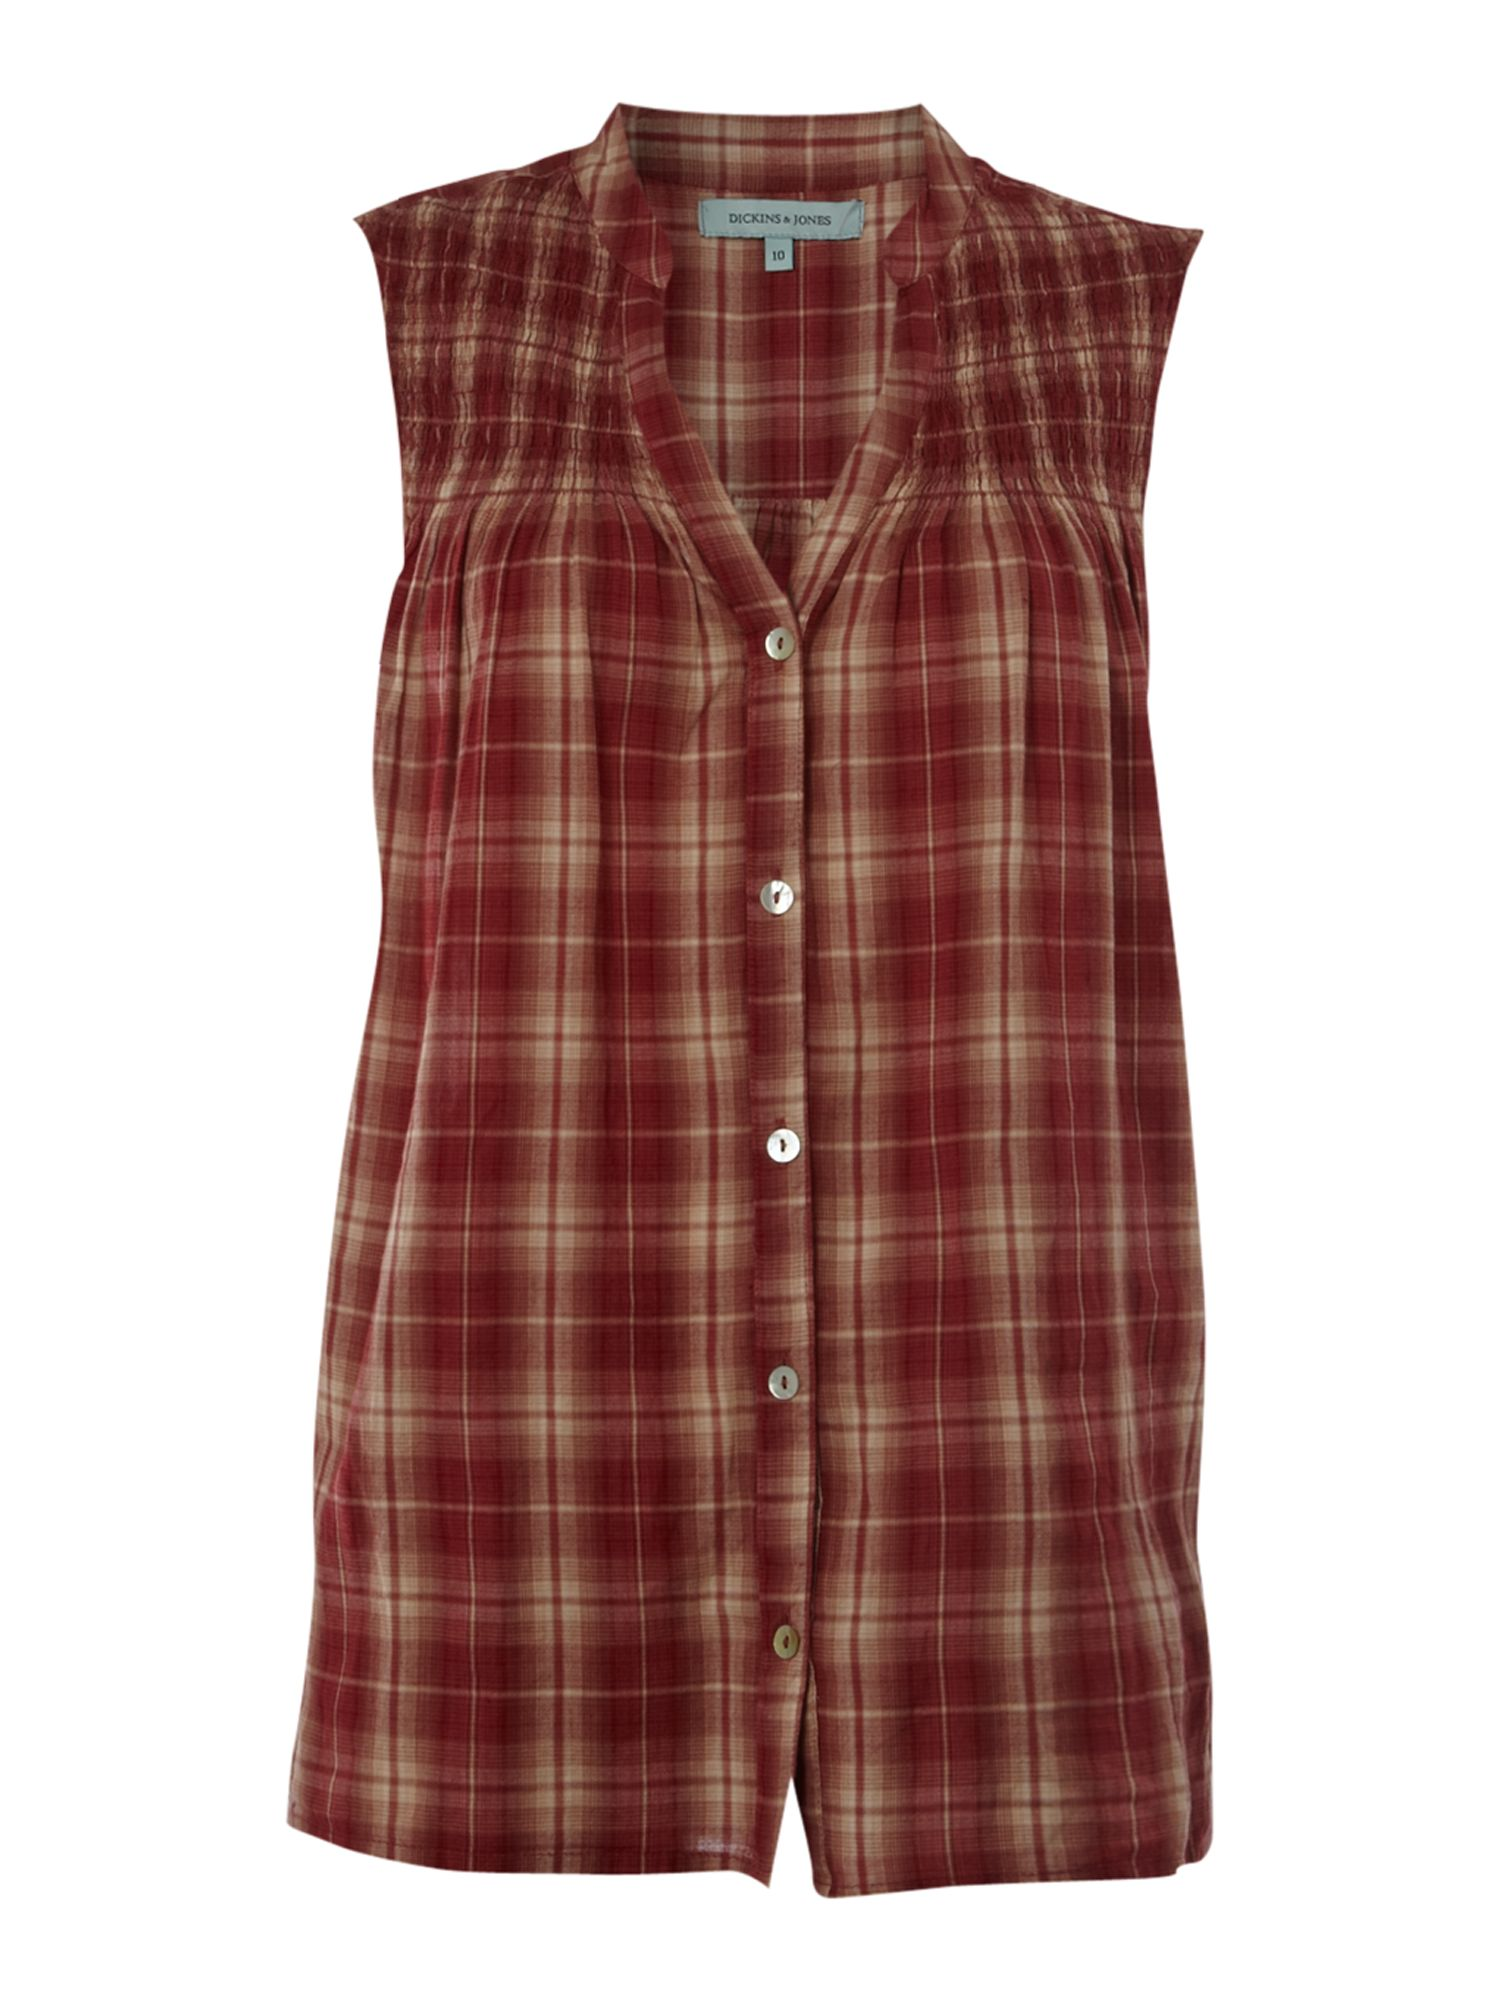 Dickins & Jones Blouse madras smock - Red product image